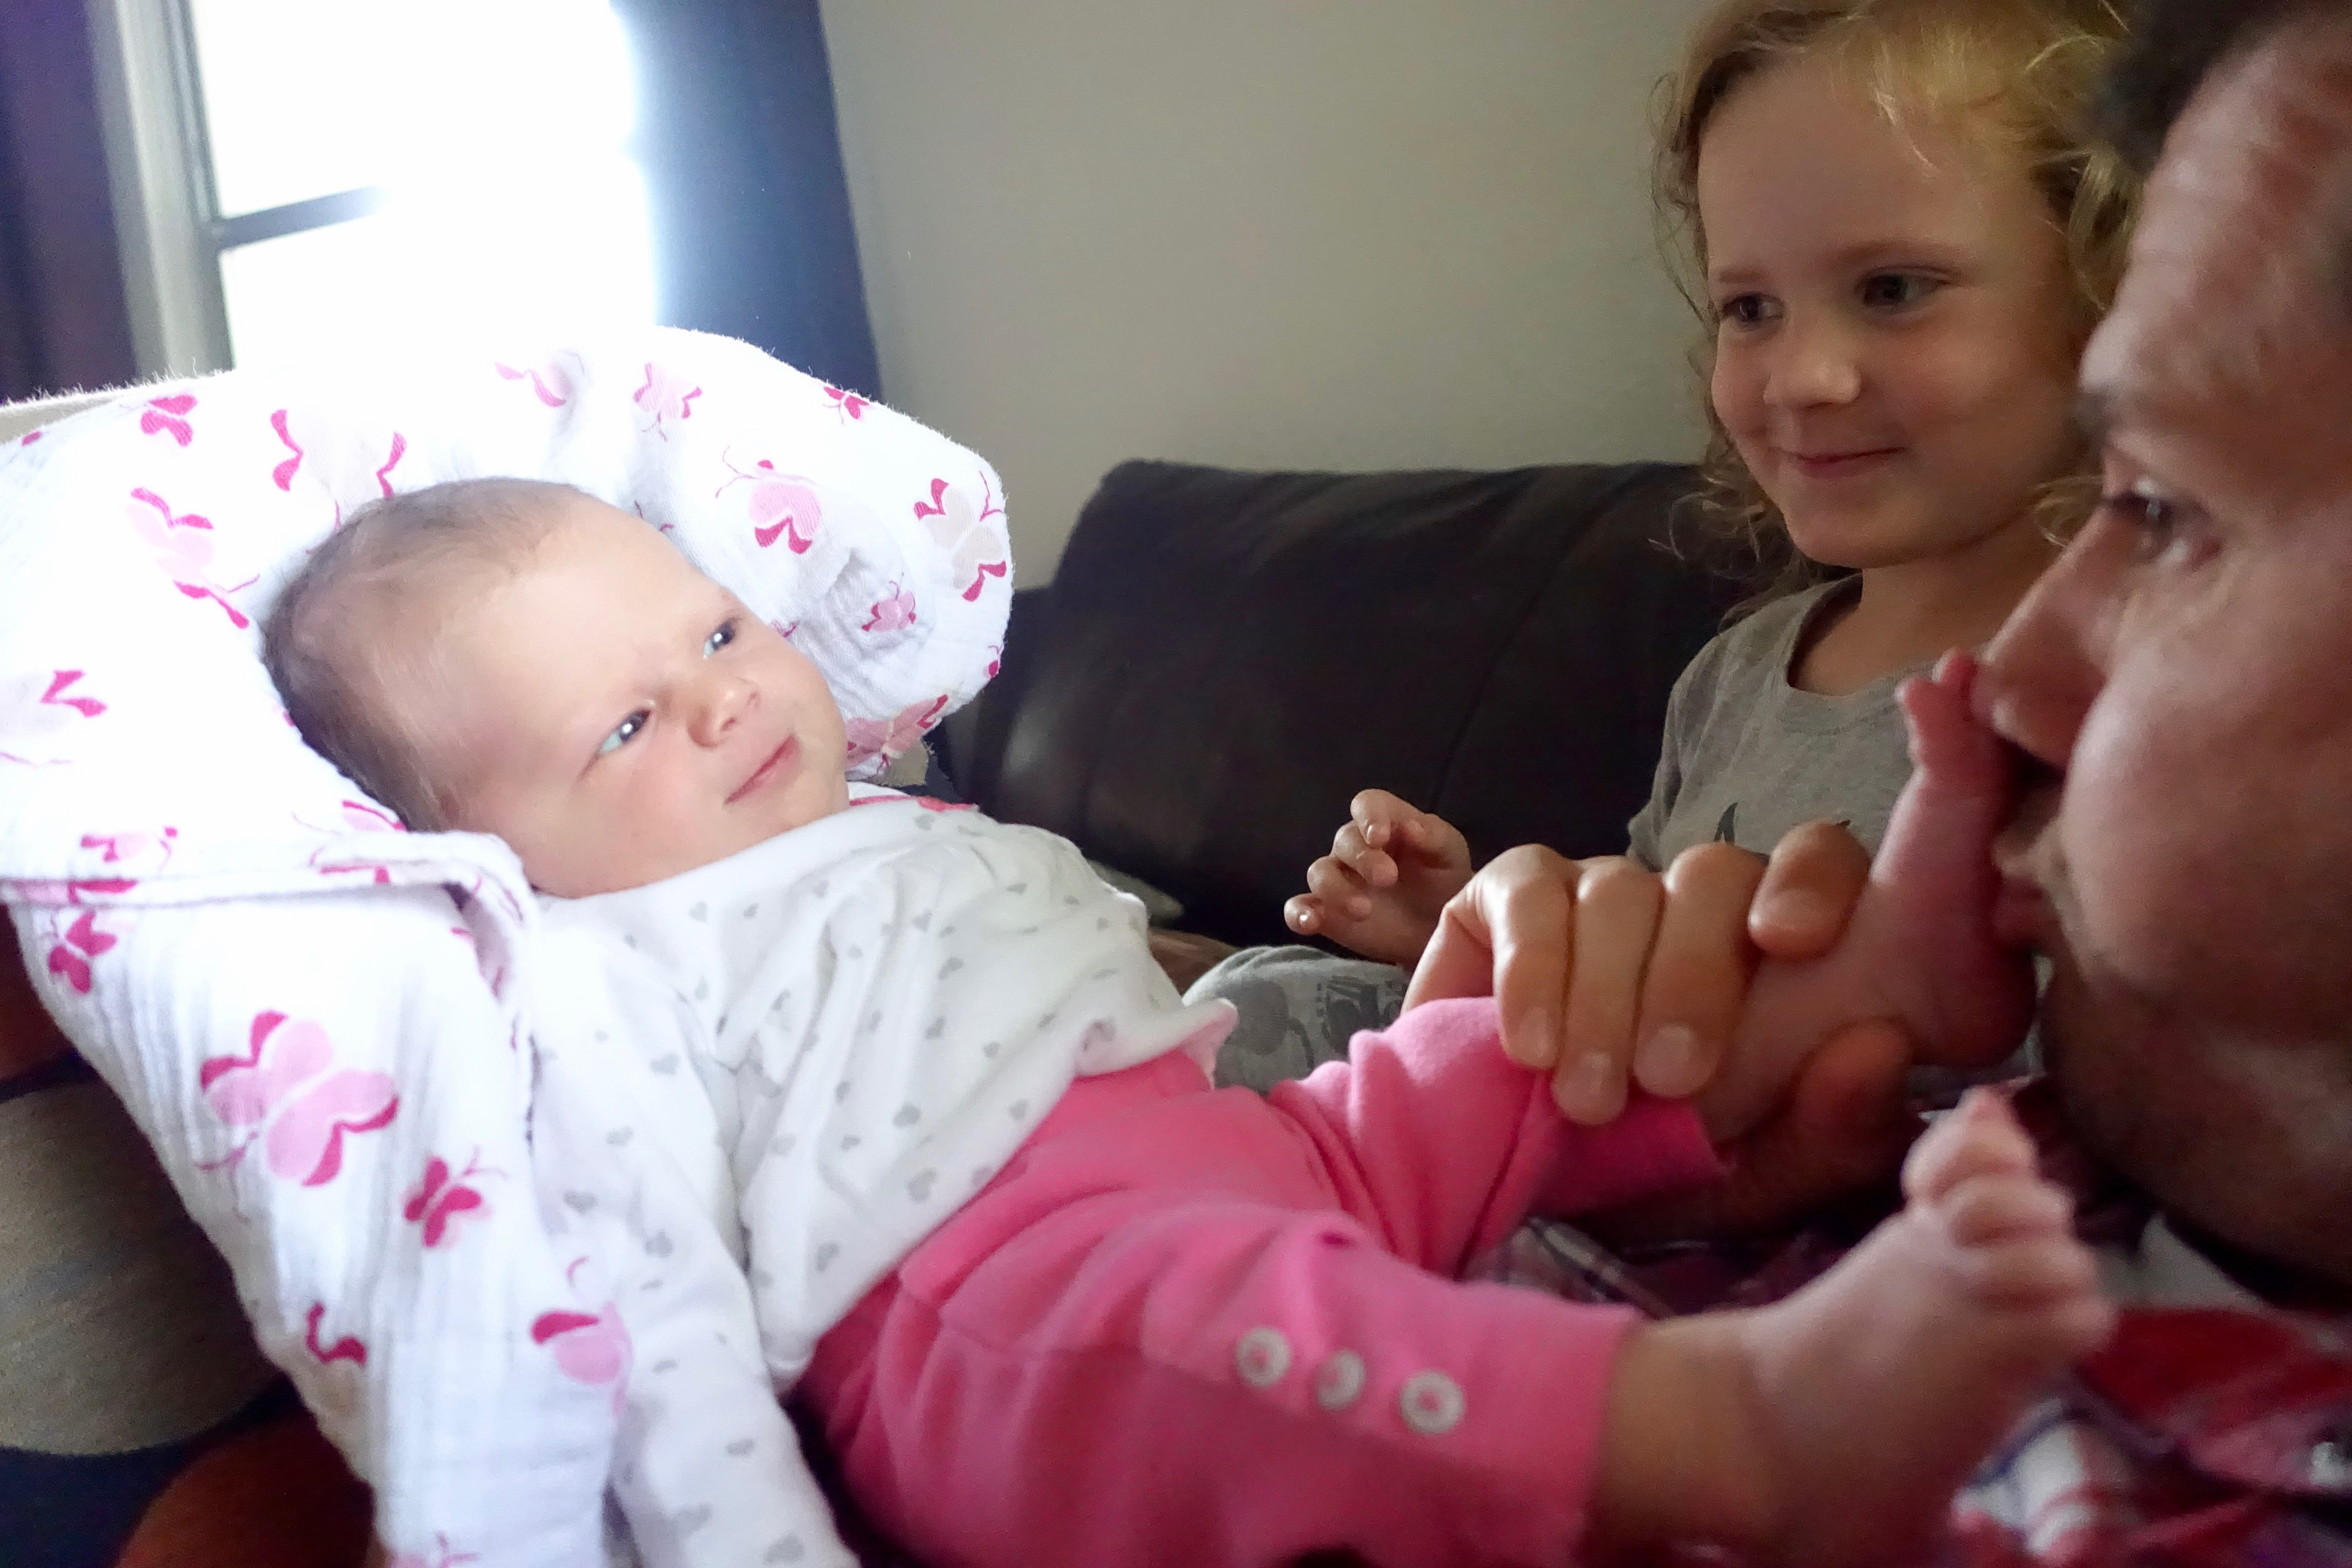 Playing with baby's toes